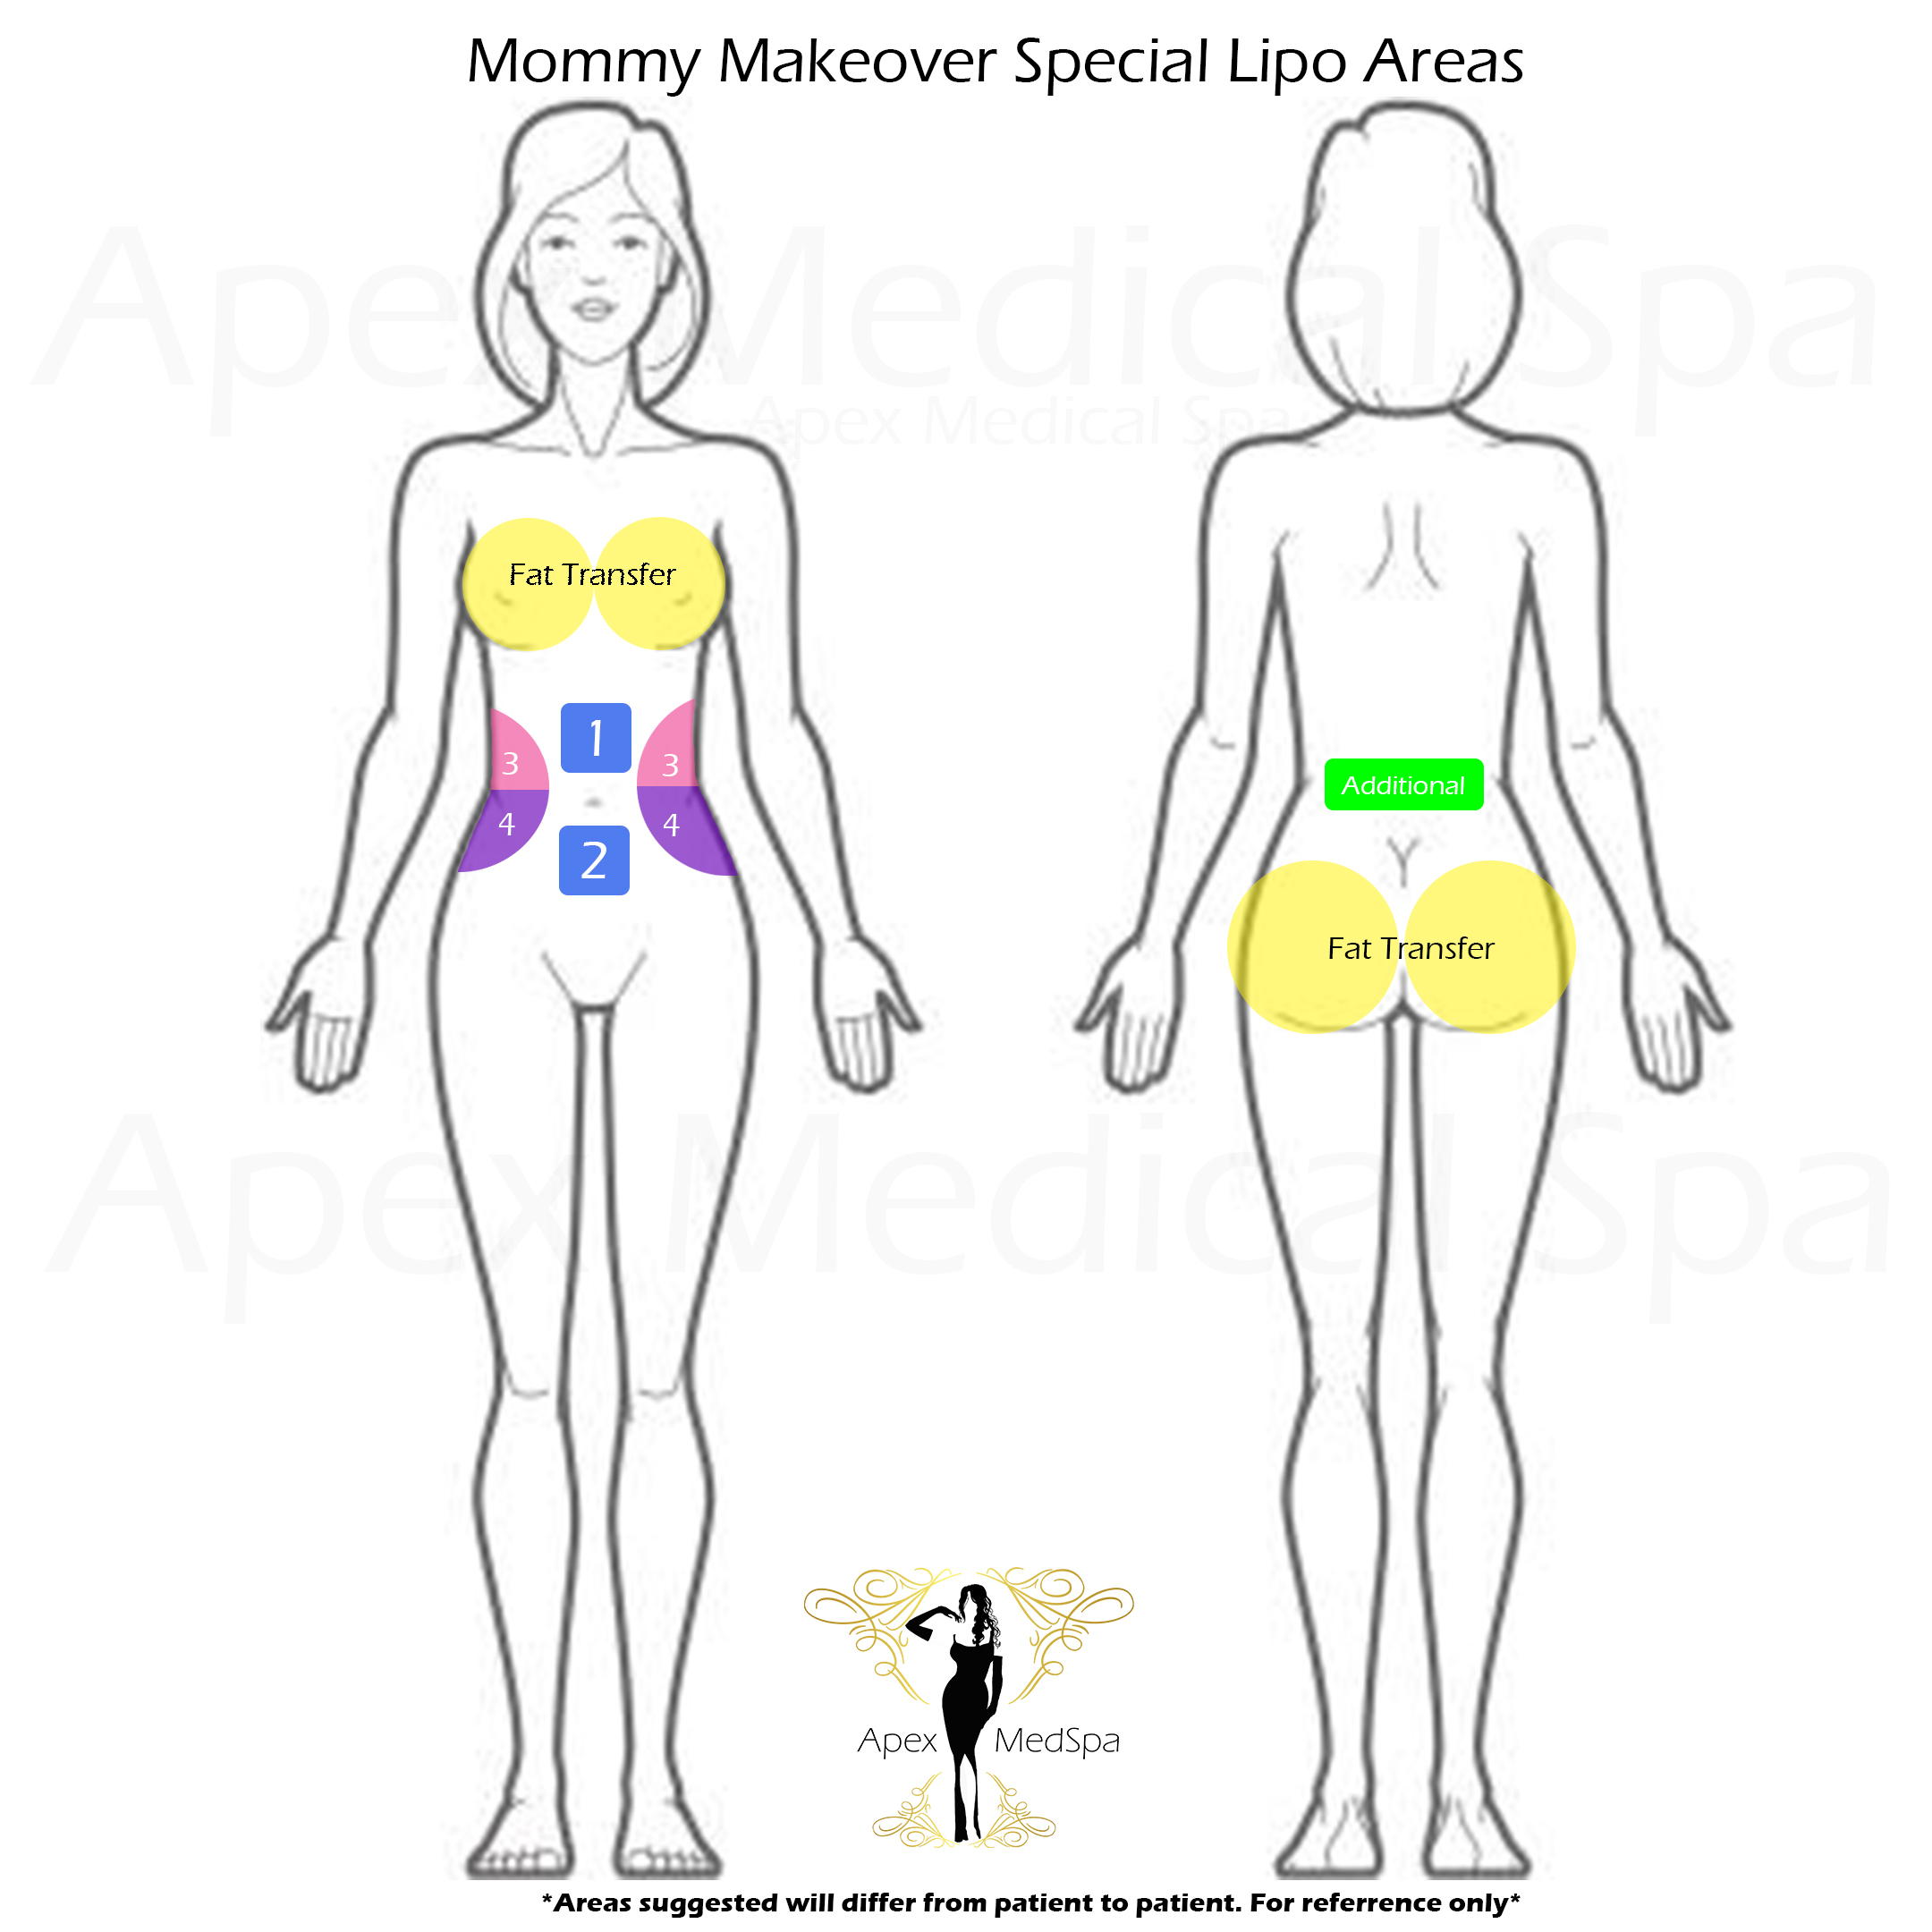 Suggested areas for Mommy Makeover Lipo